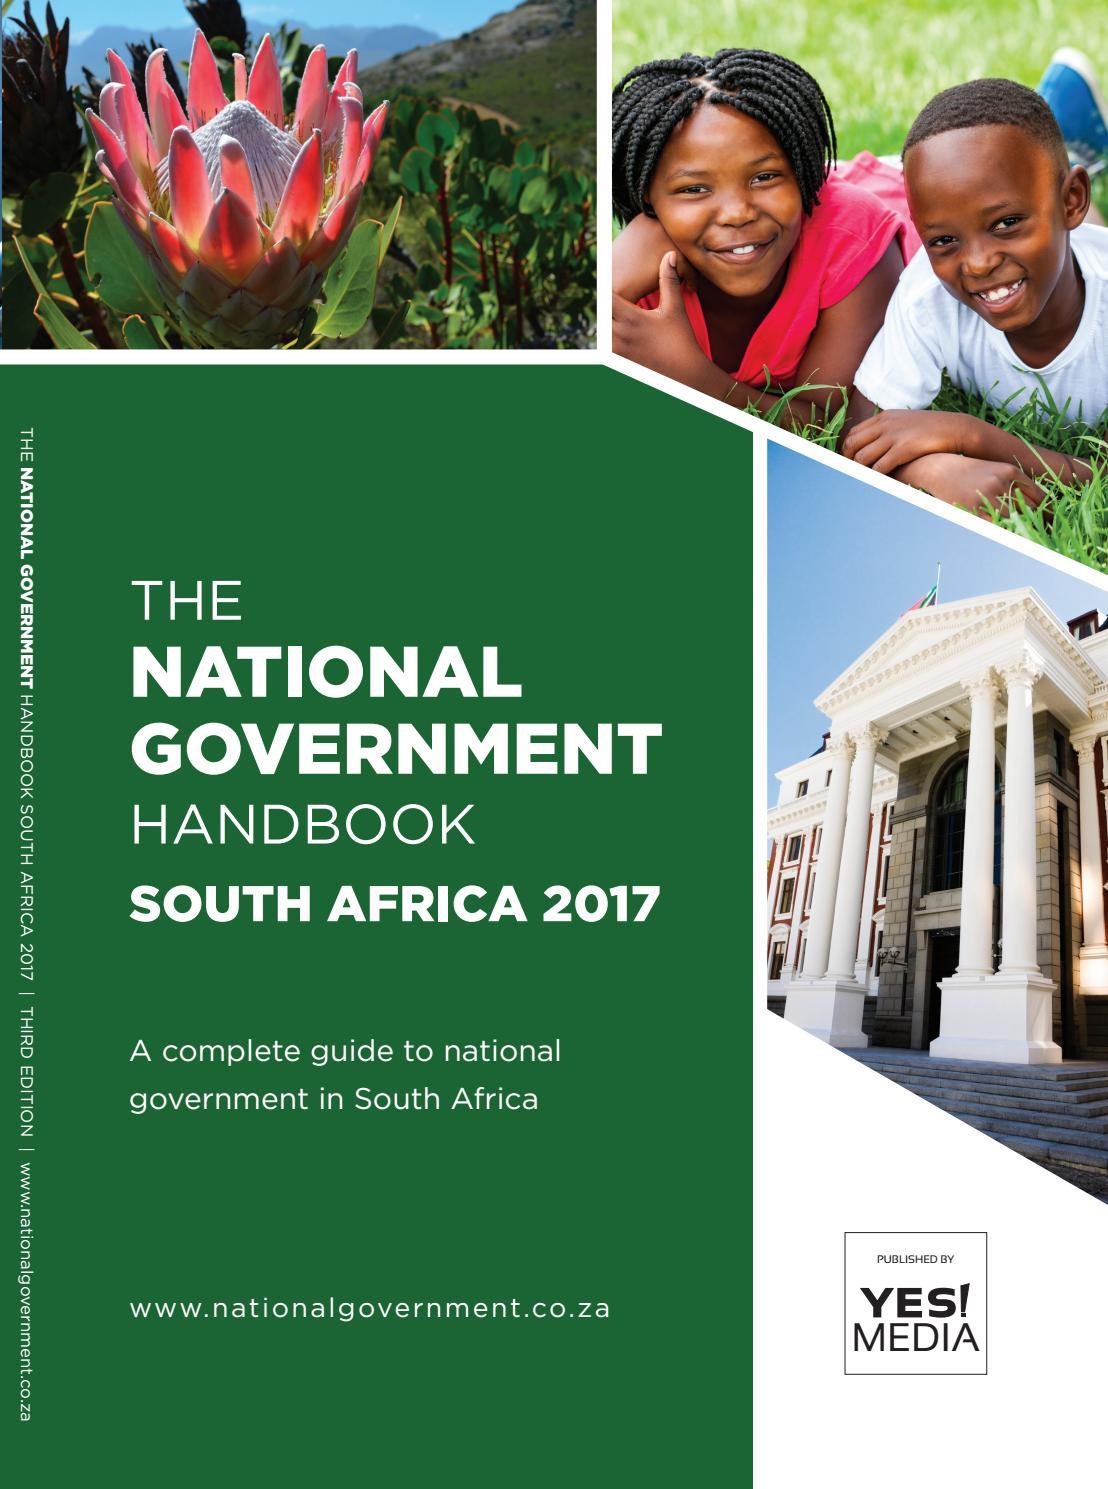 National Government Handbook - South Africa 2017 by Yes